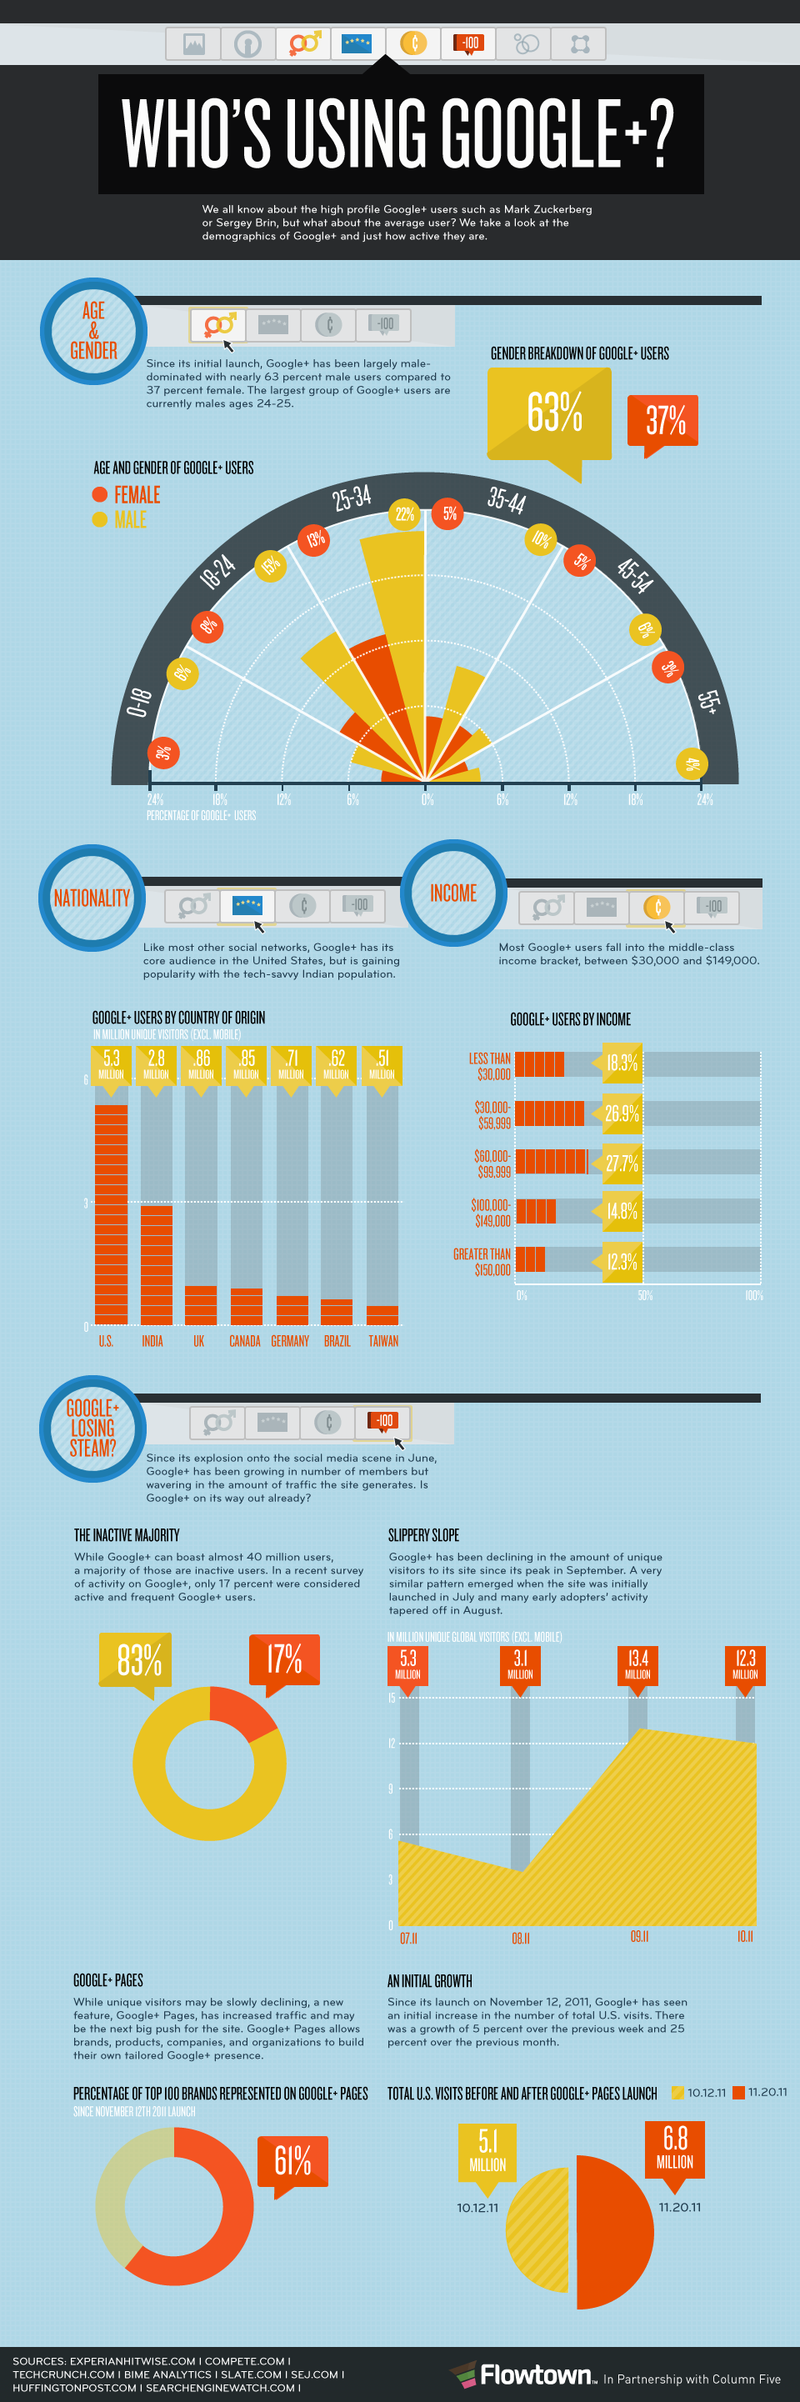 Google Plus infographic from Flowtown